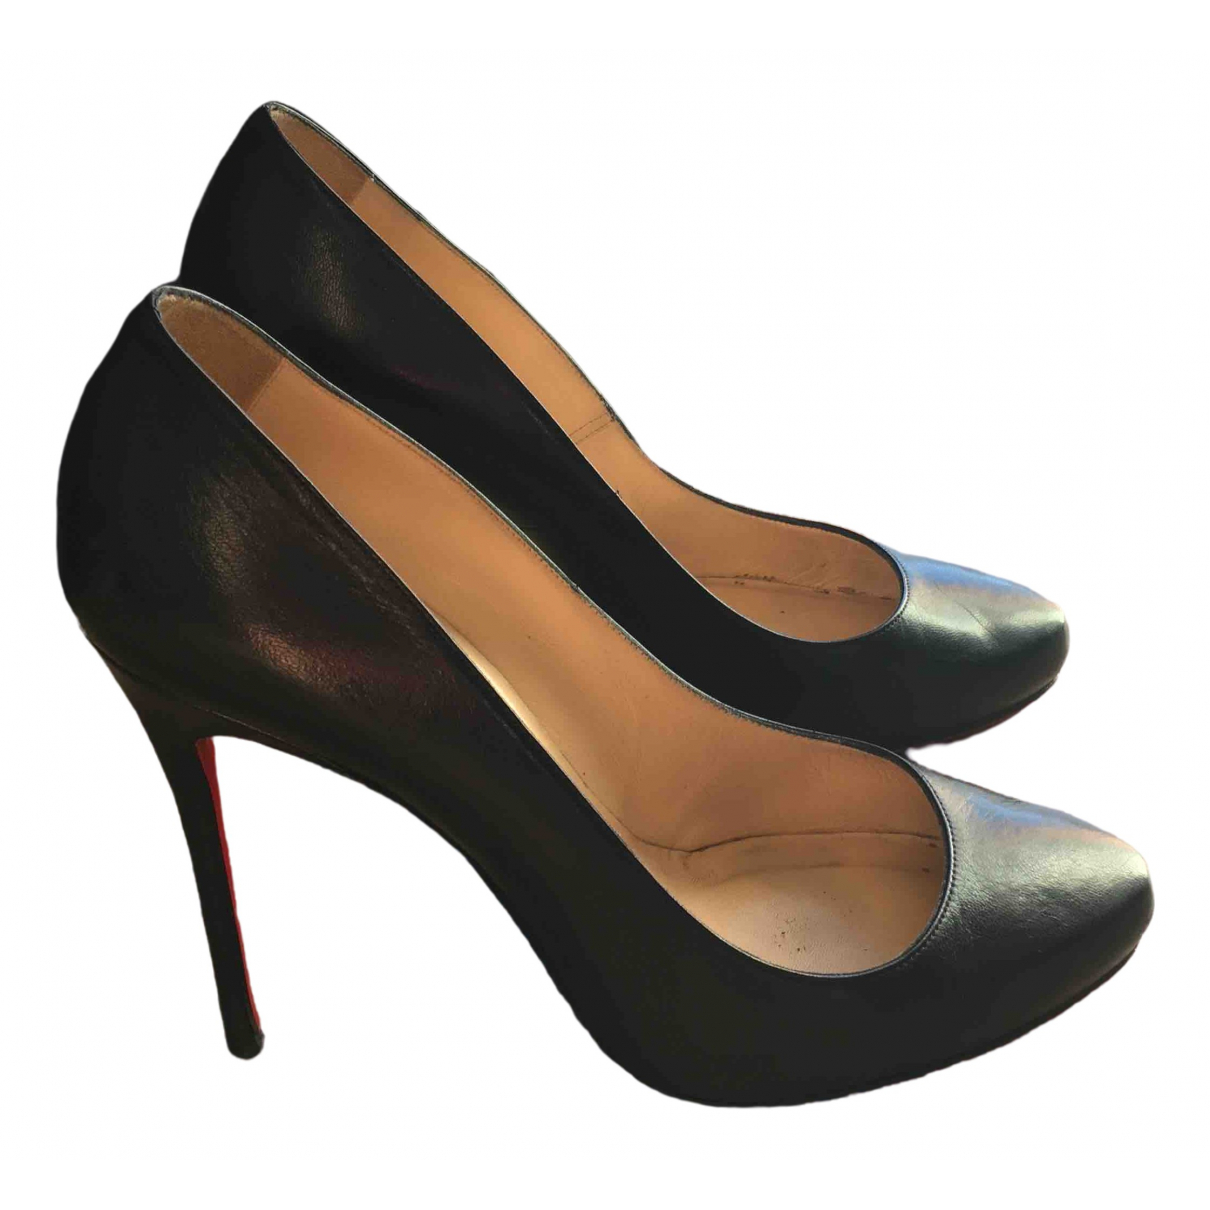 Christian Louboutin \N Black Leather Heels for Women 39 EU